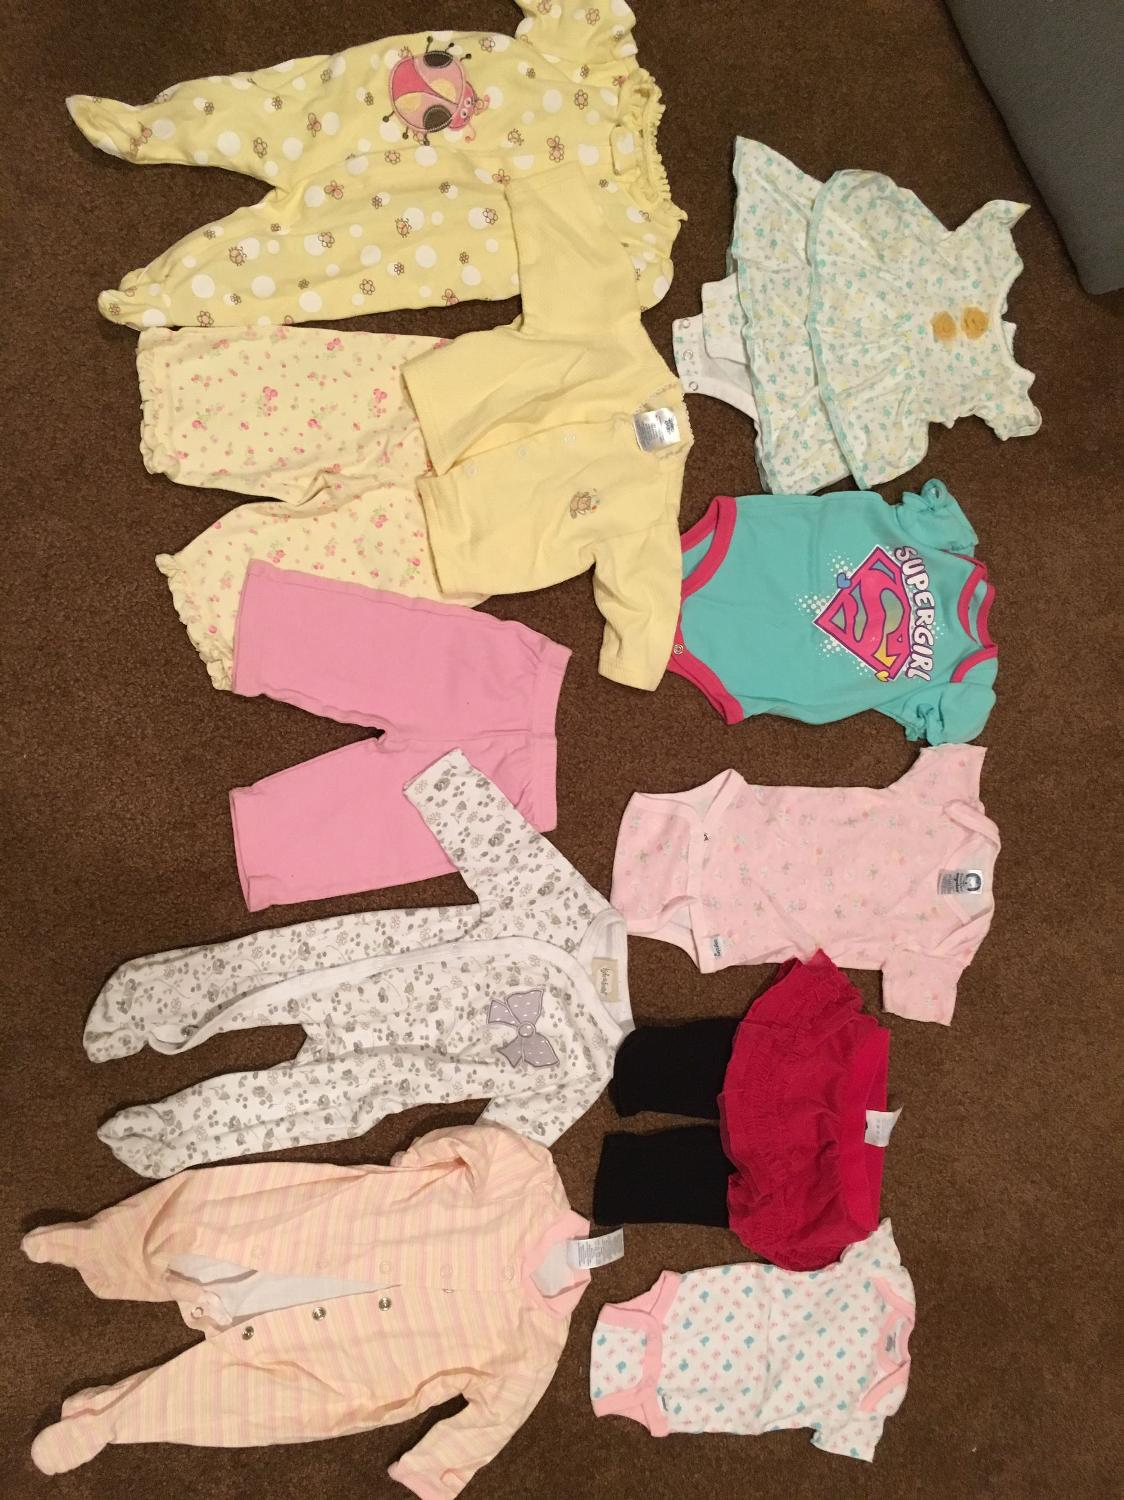 Where Can I Sell Baby Clothes In Nj